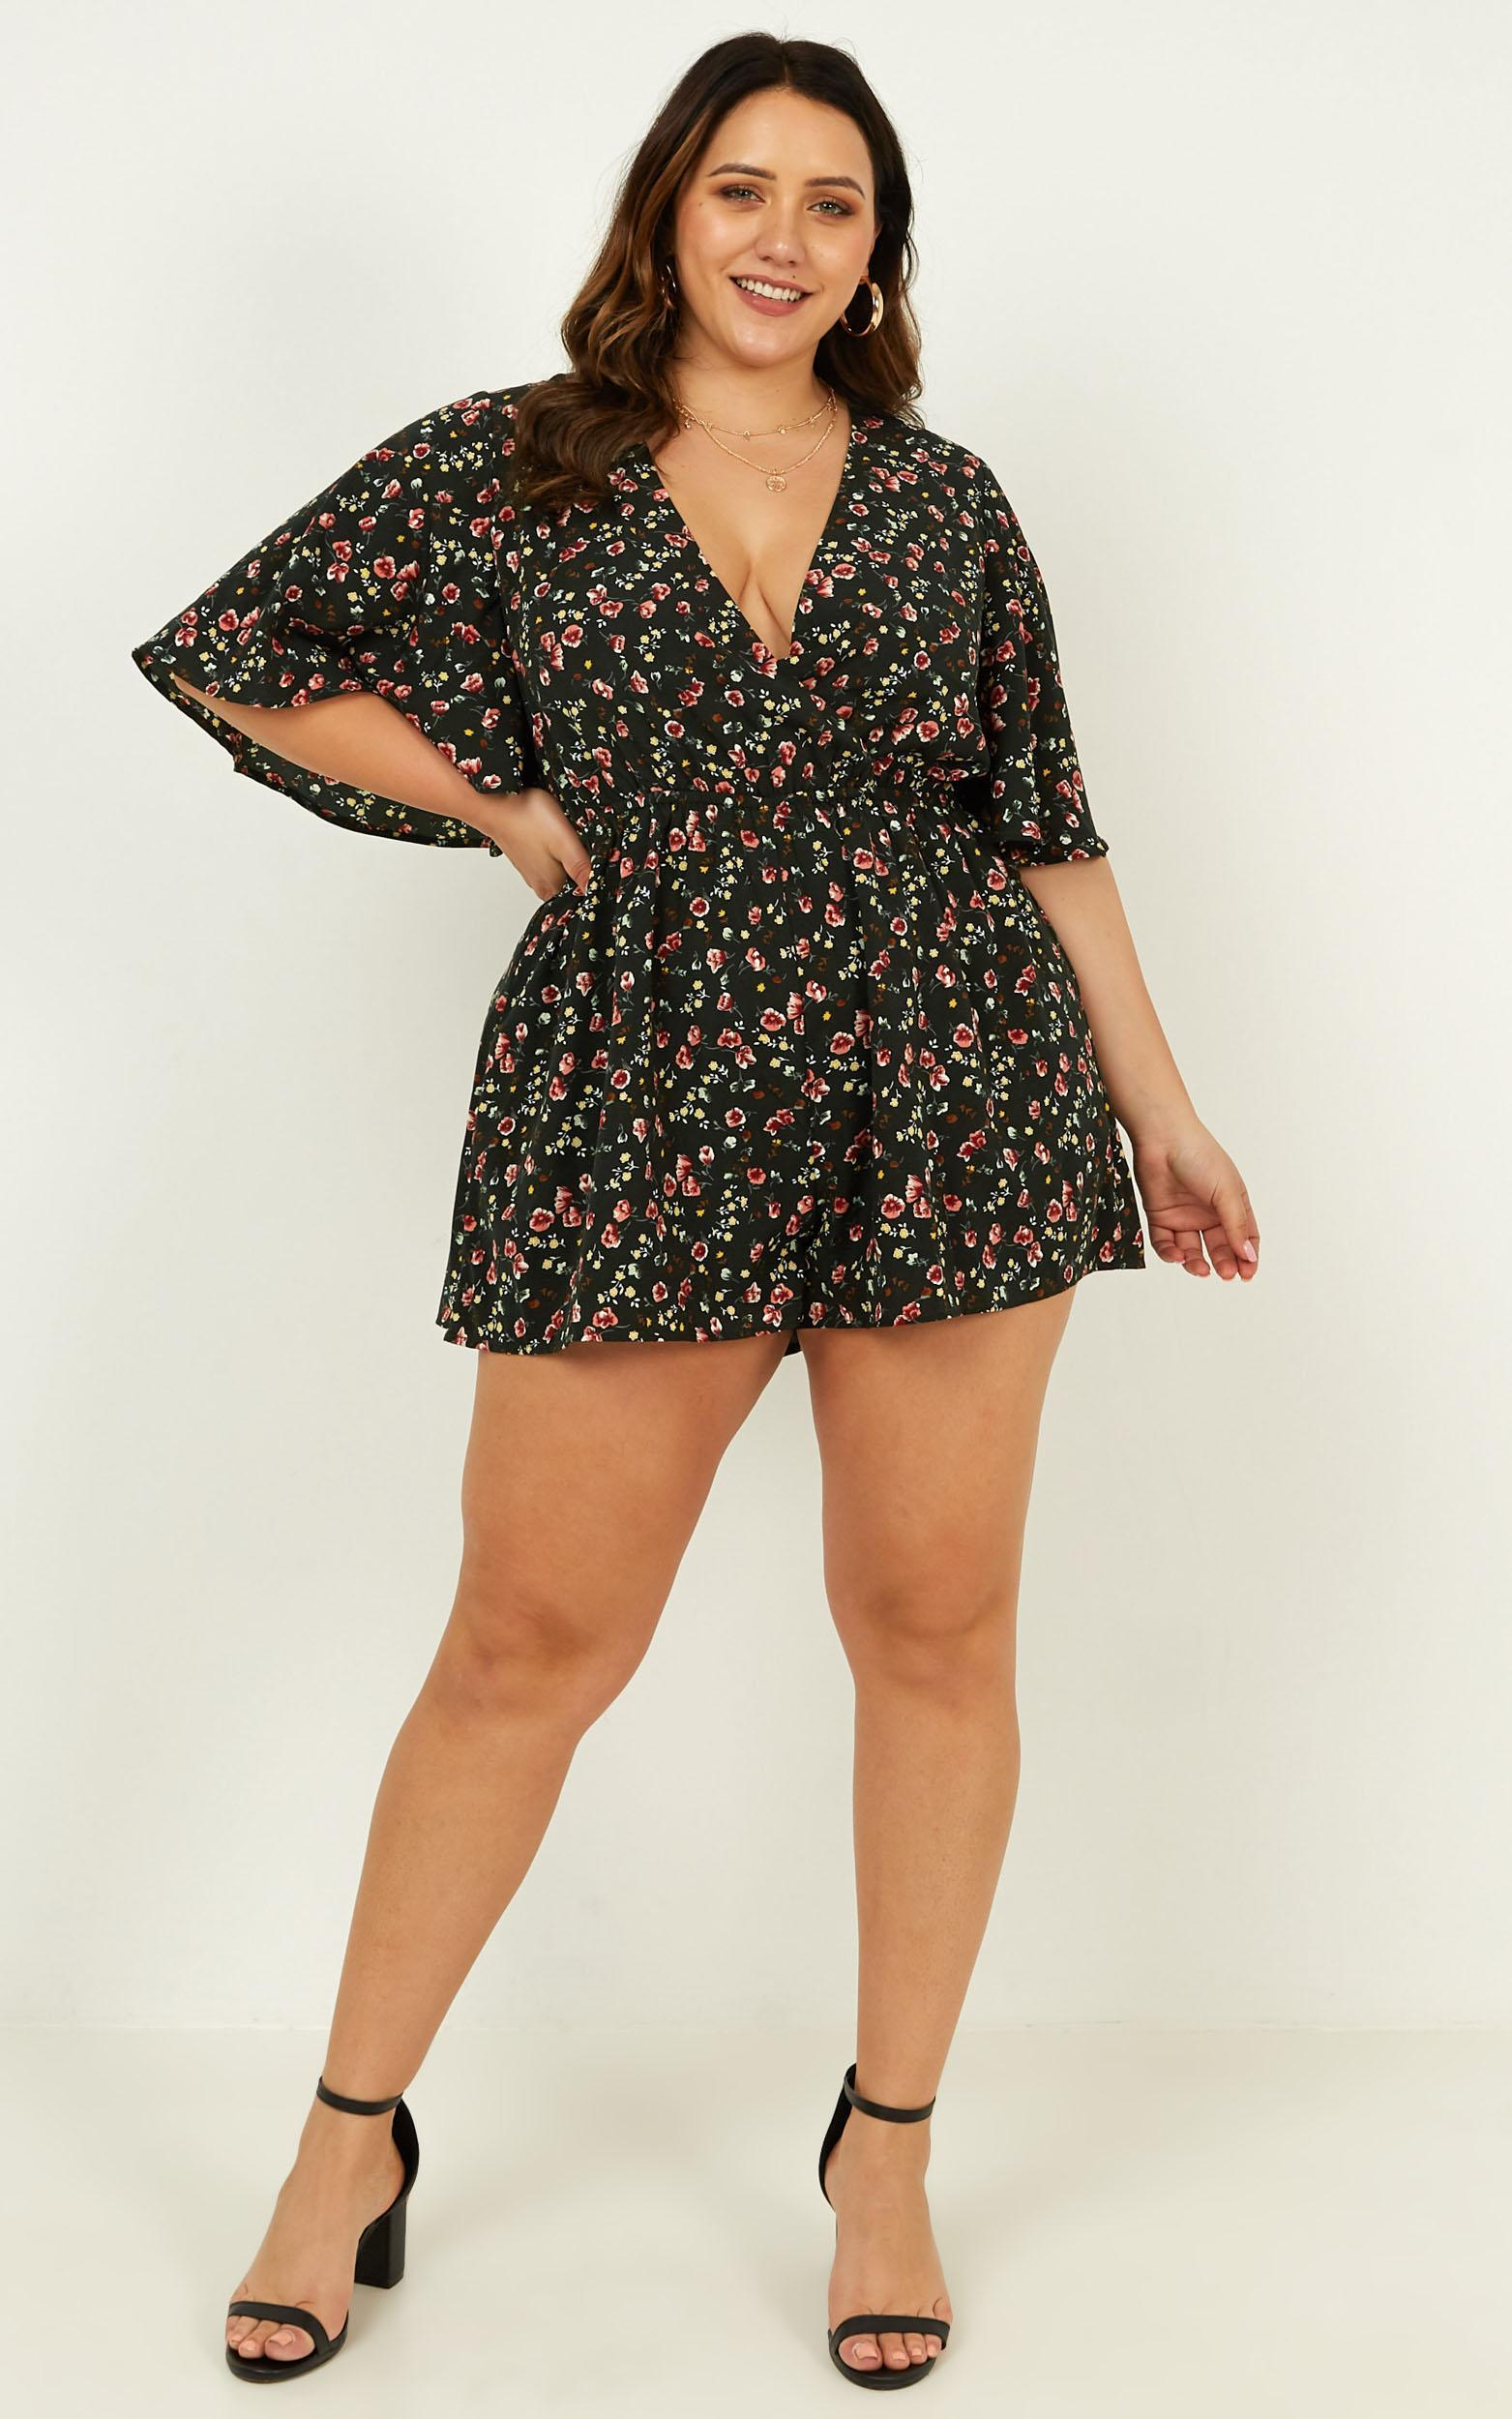 Garden of Eden Playsuit in forest green floral - 16 (XXL), Green, hi-res image number null